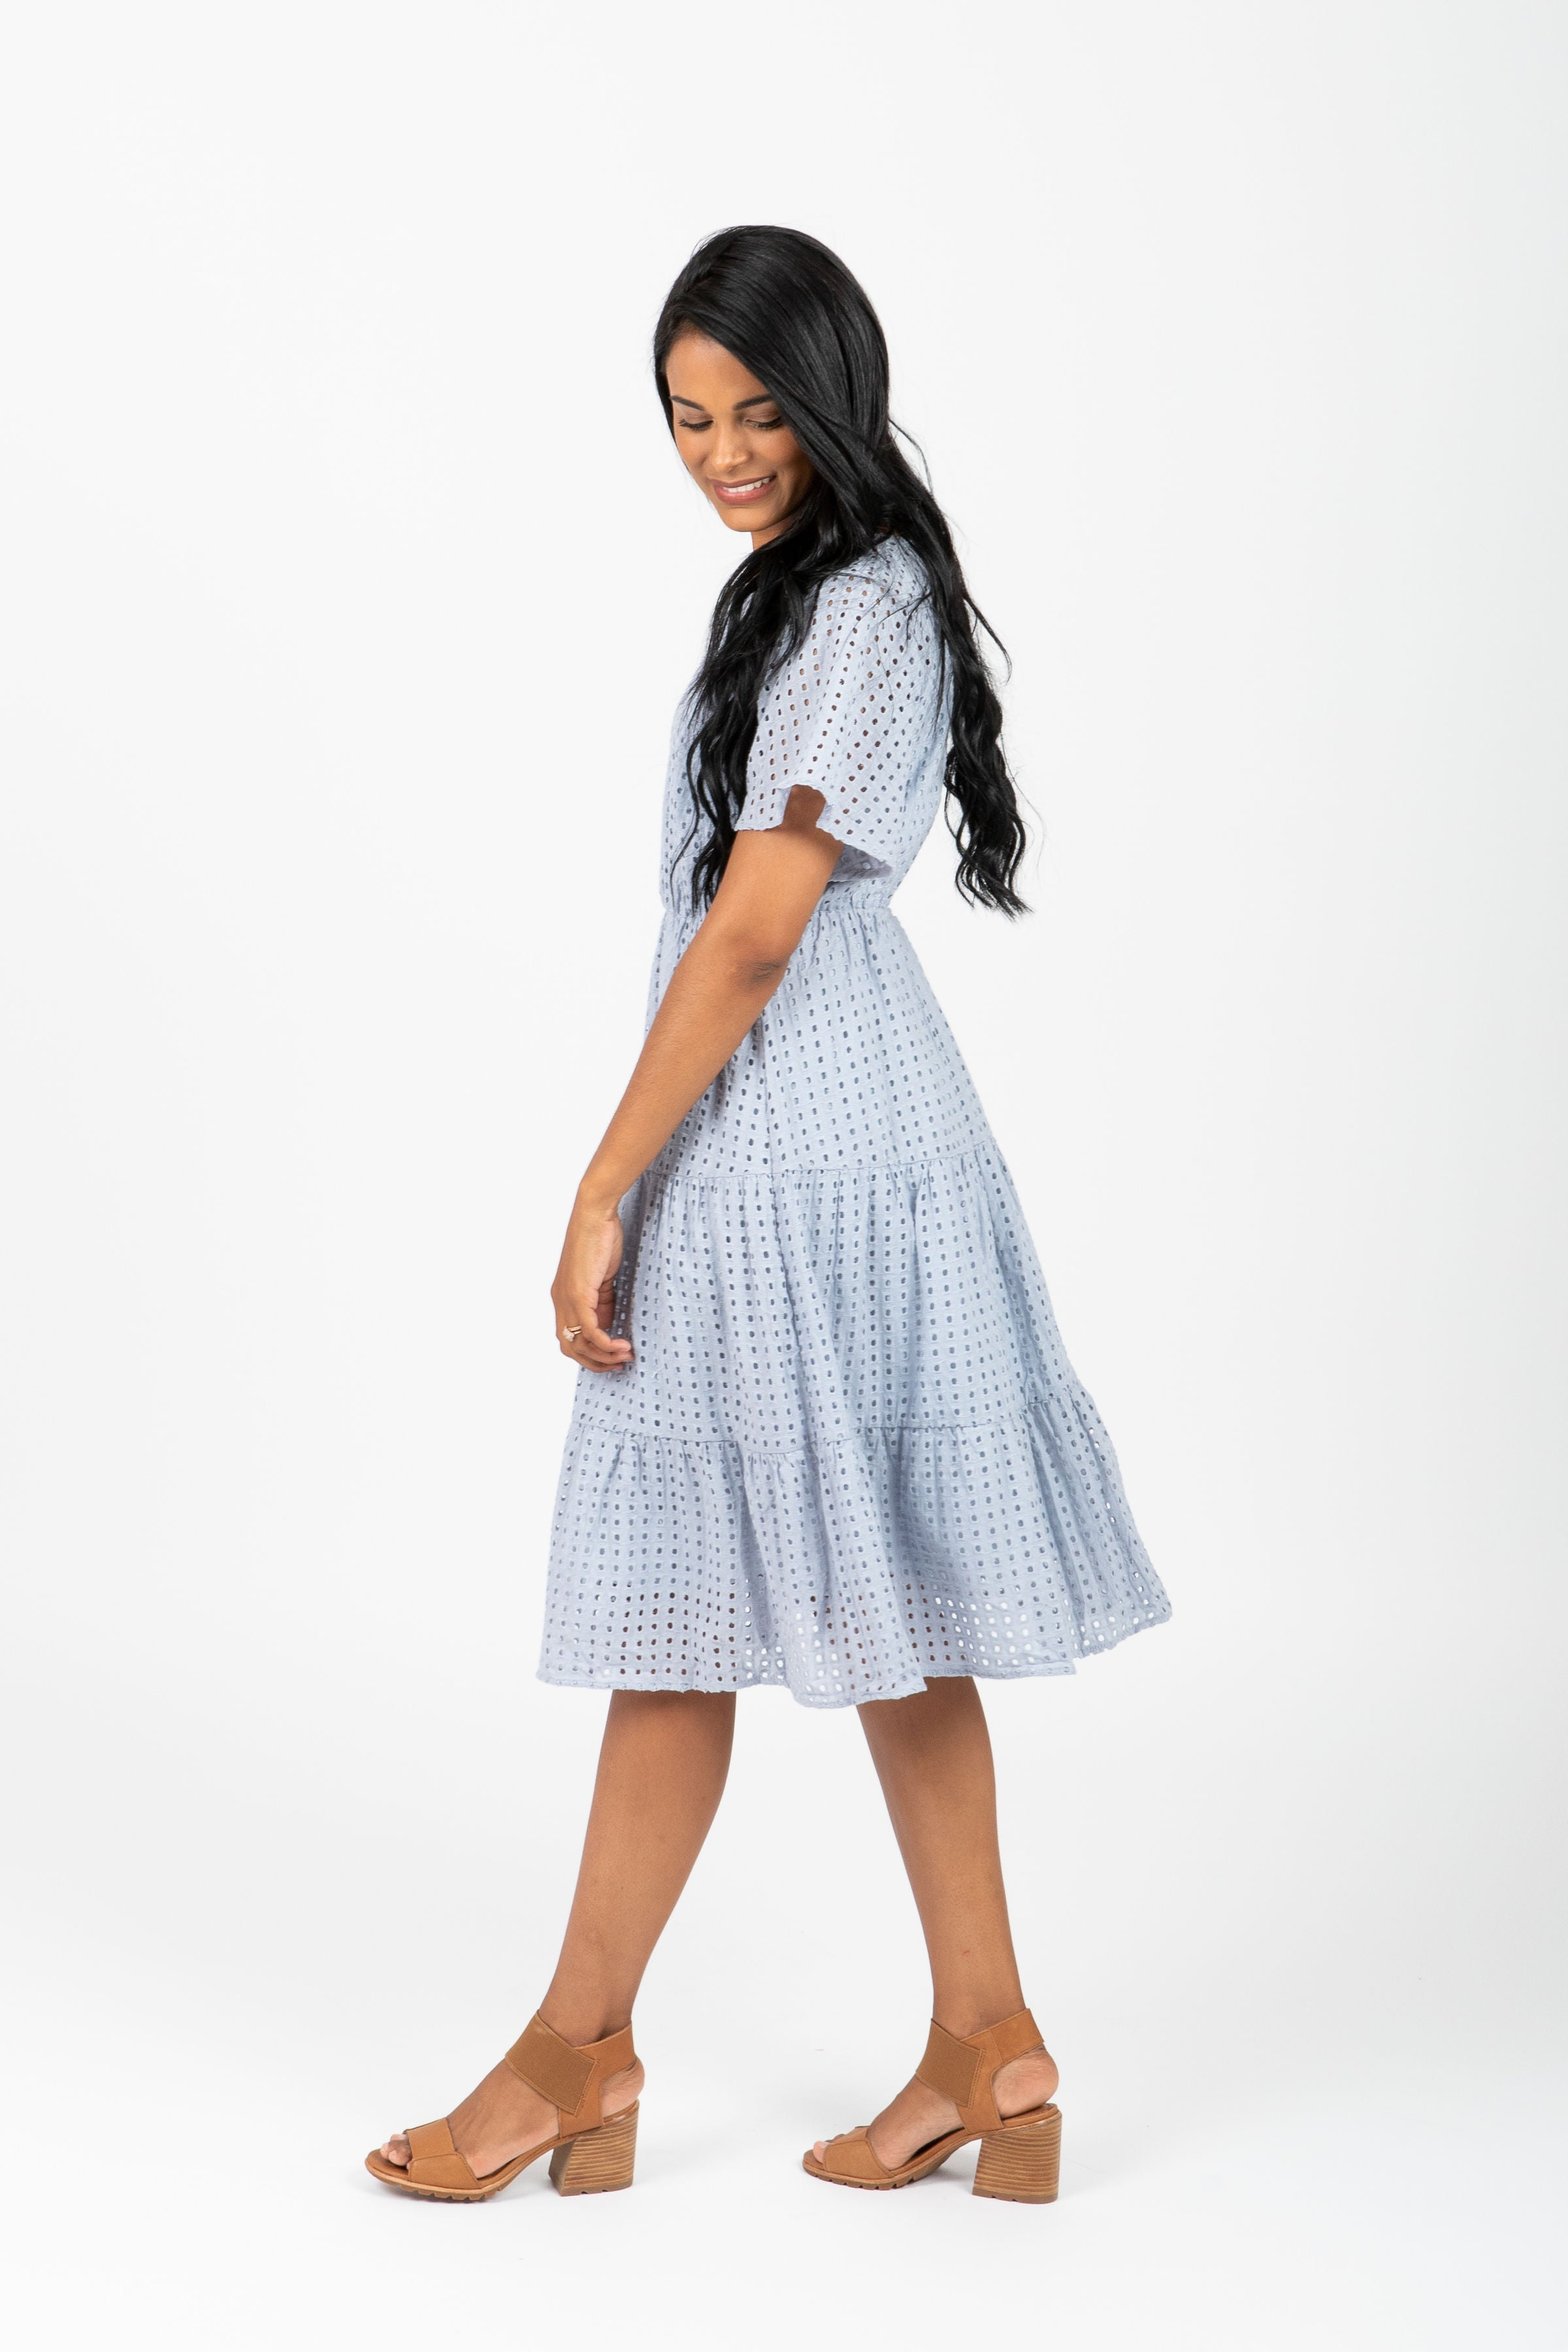 The Exposed Perforated Tiered Detail Dress in Light Blue